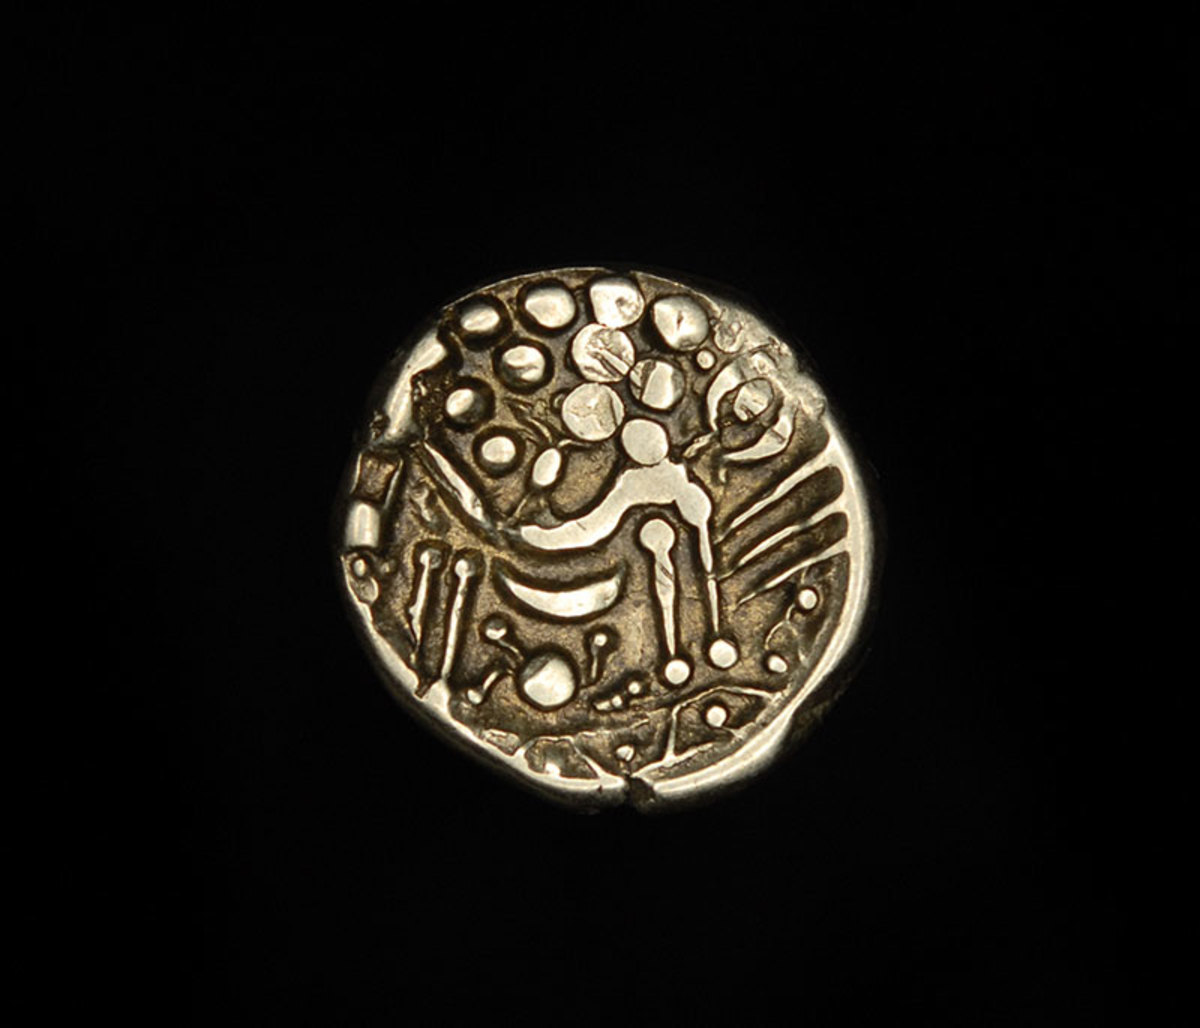 Gold British Celtic coin (England).